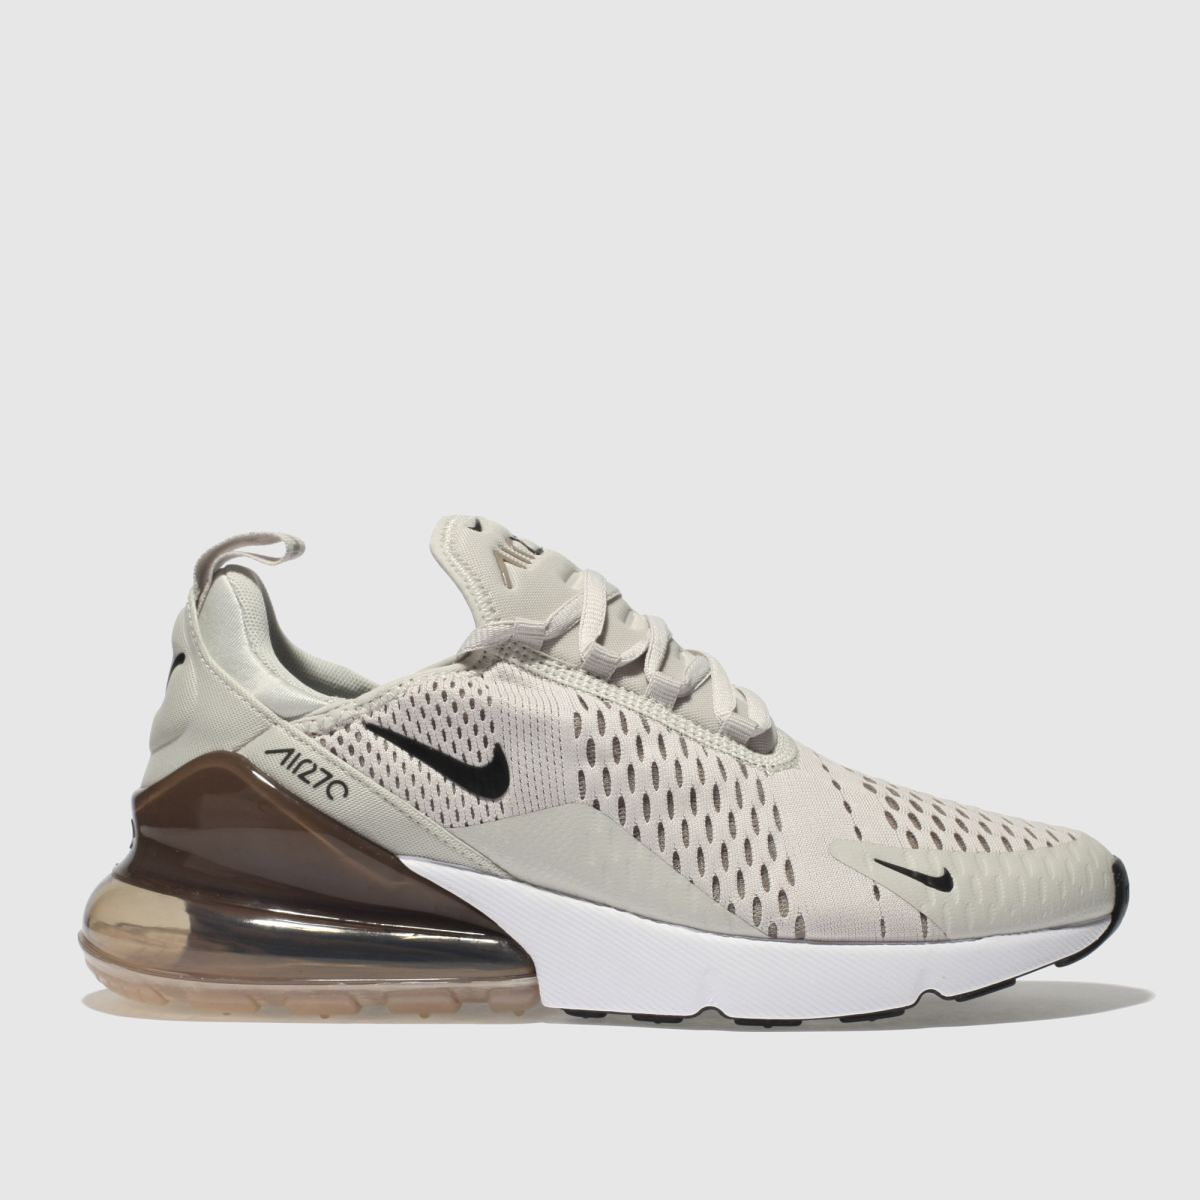 Nike Stone Air Max 270 Trainers